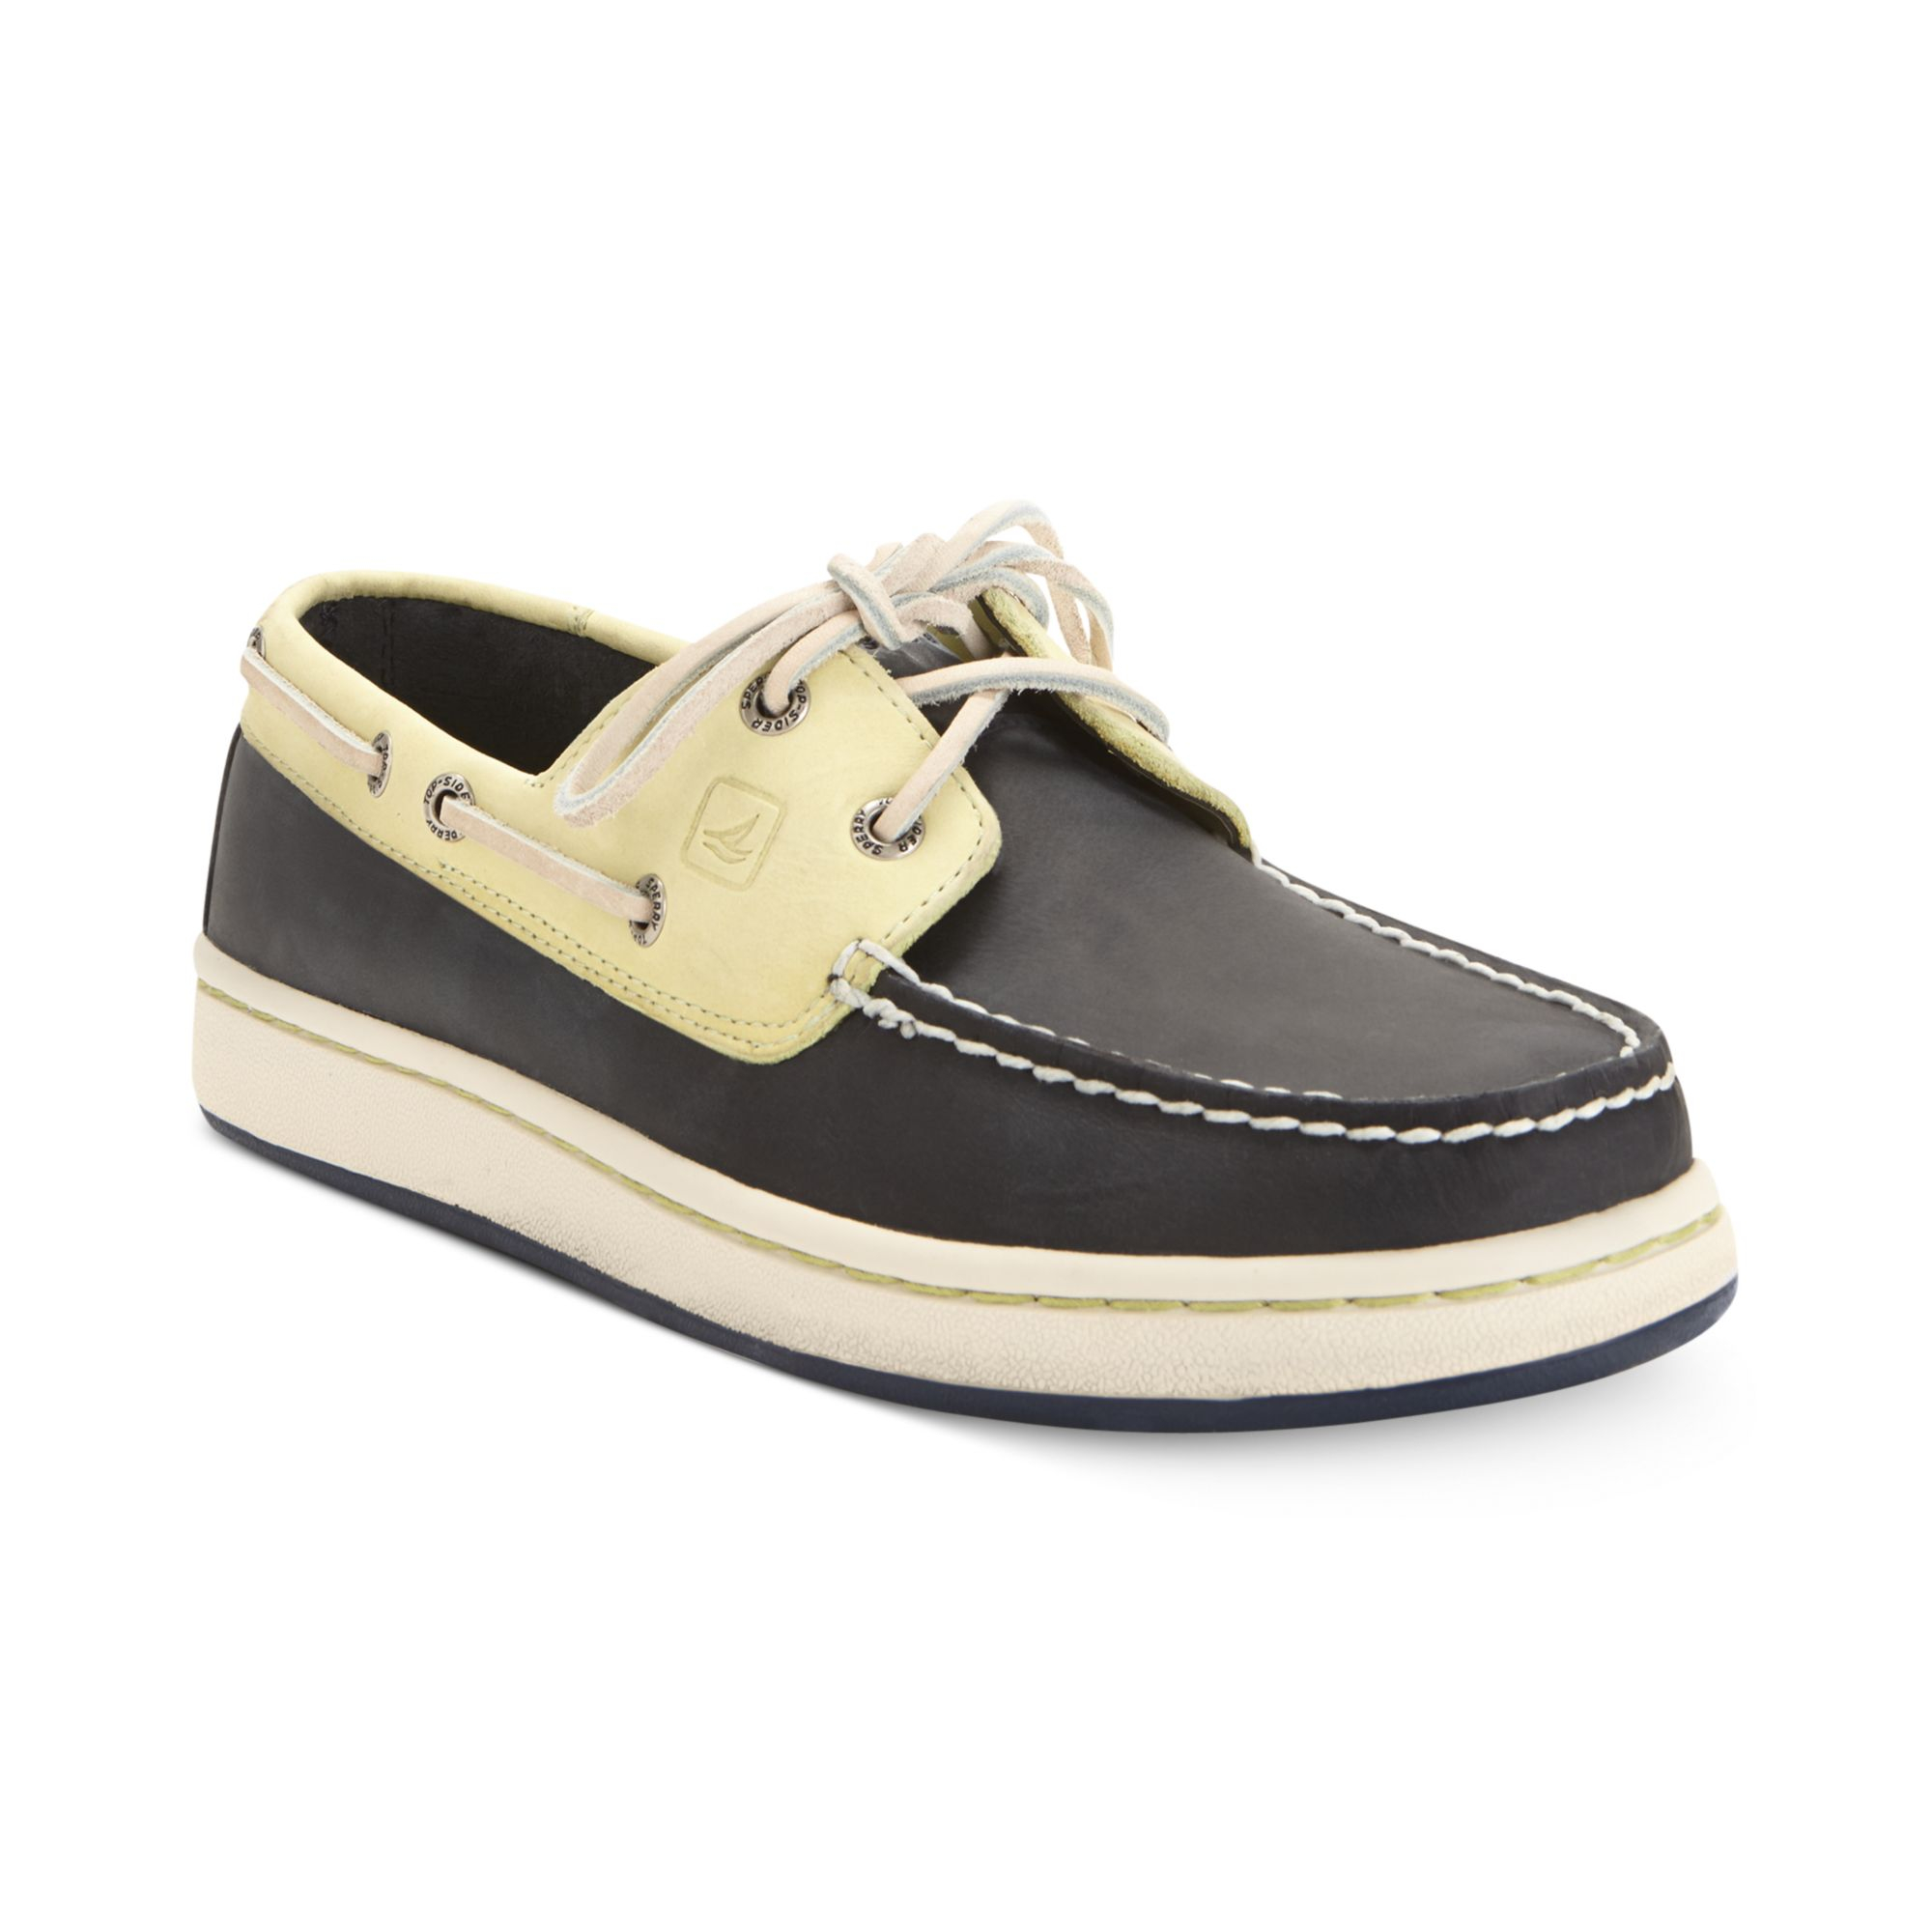 Sperry Boat Shoes & Accessories. For over eighty years, Sperry has built a legacy of effortless, heritage products. Whether for men, women, kids, or babies, Sperry's selection of hand-crafted footwear includes our iconic Sperry boat shoes, sandals, loafers, .